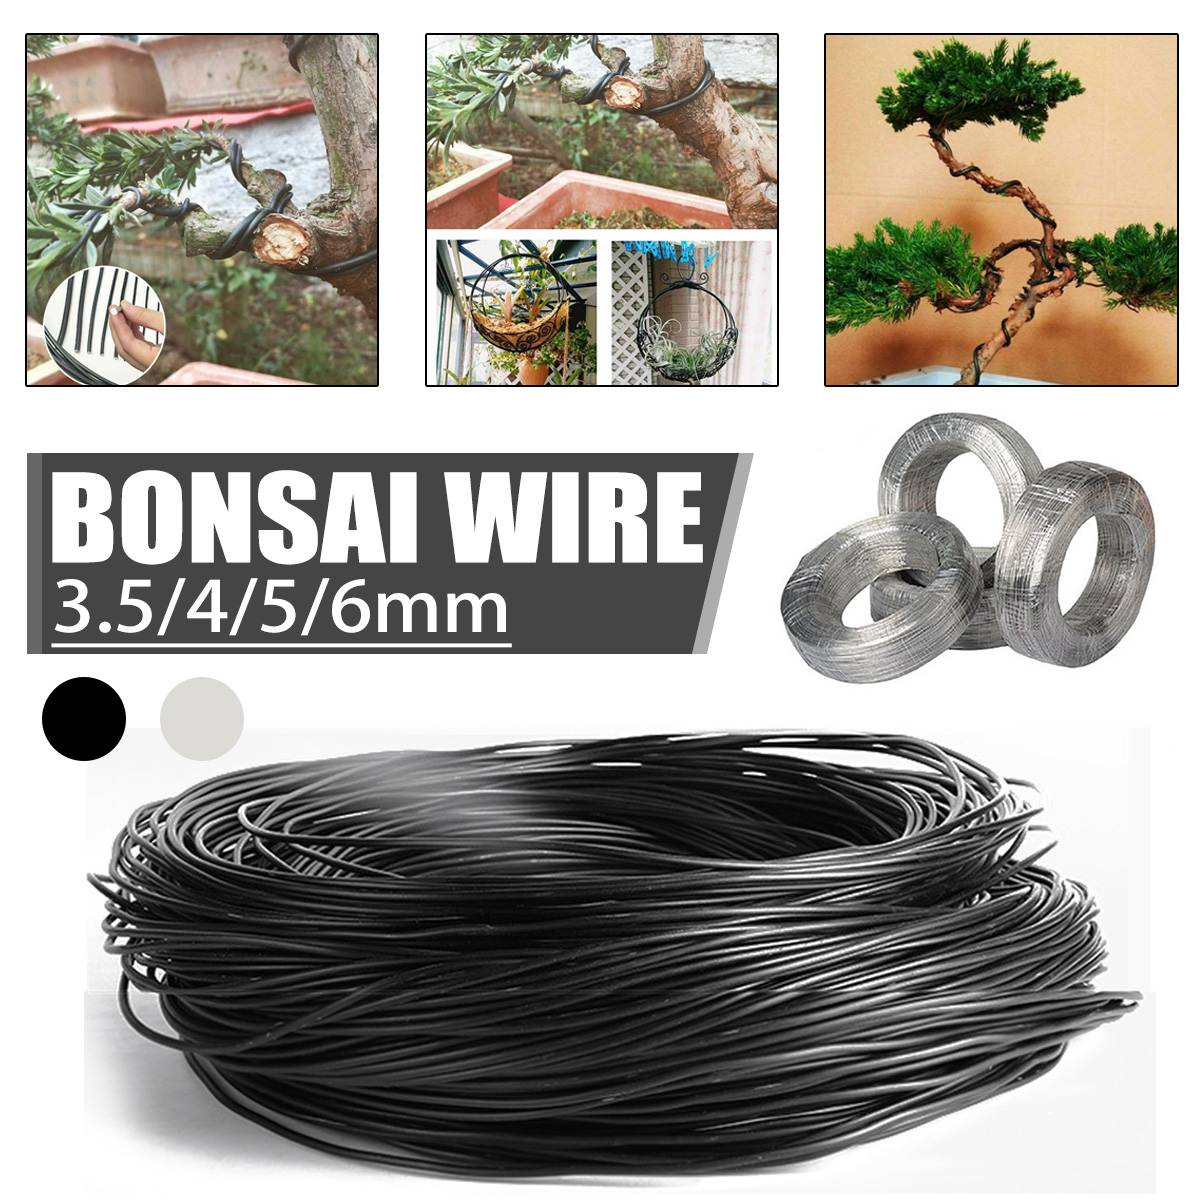 1 Roll Aluminum Tree Training Wires For Garden Plants Practical Bonsai Wire Beginners Trainers Artists Black Silver 3.5/4/5/6mm